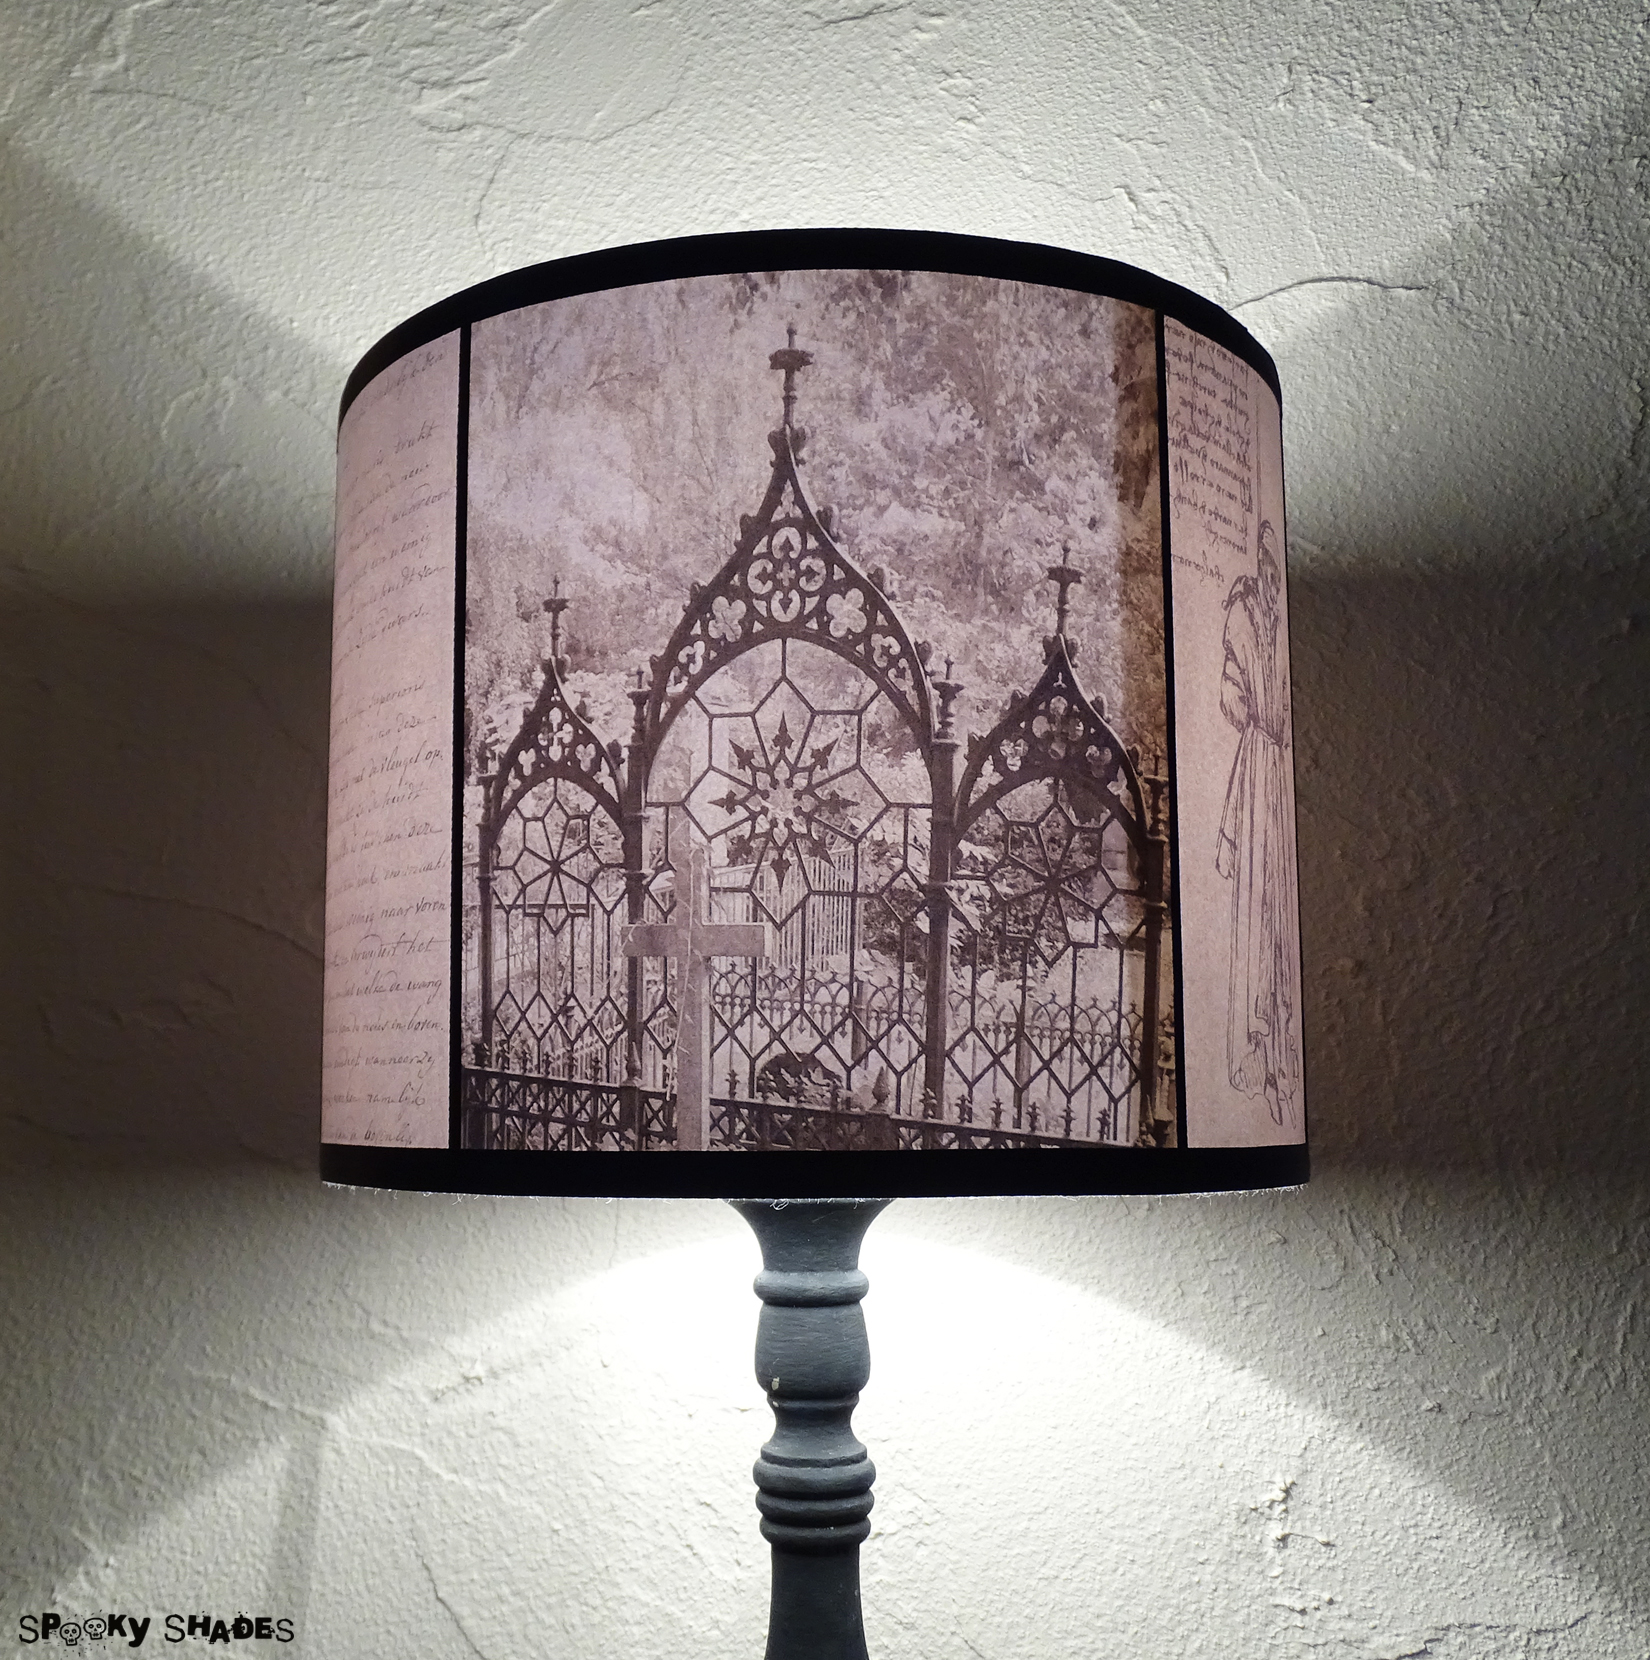 Requiescat in pace graveyards black and white gothic drum lamp shade rebelsmarketrequiescatinpacegraveyardsblackandwhitegothicdrumlampshadelighting6g aloadofball Image collections